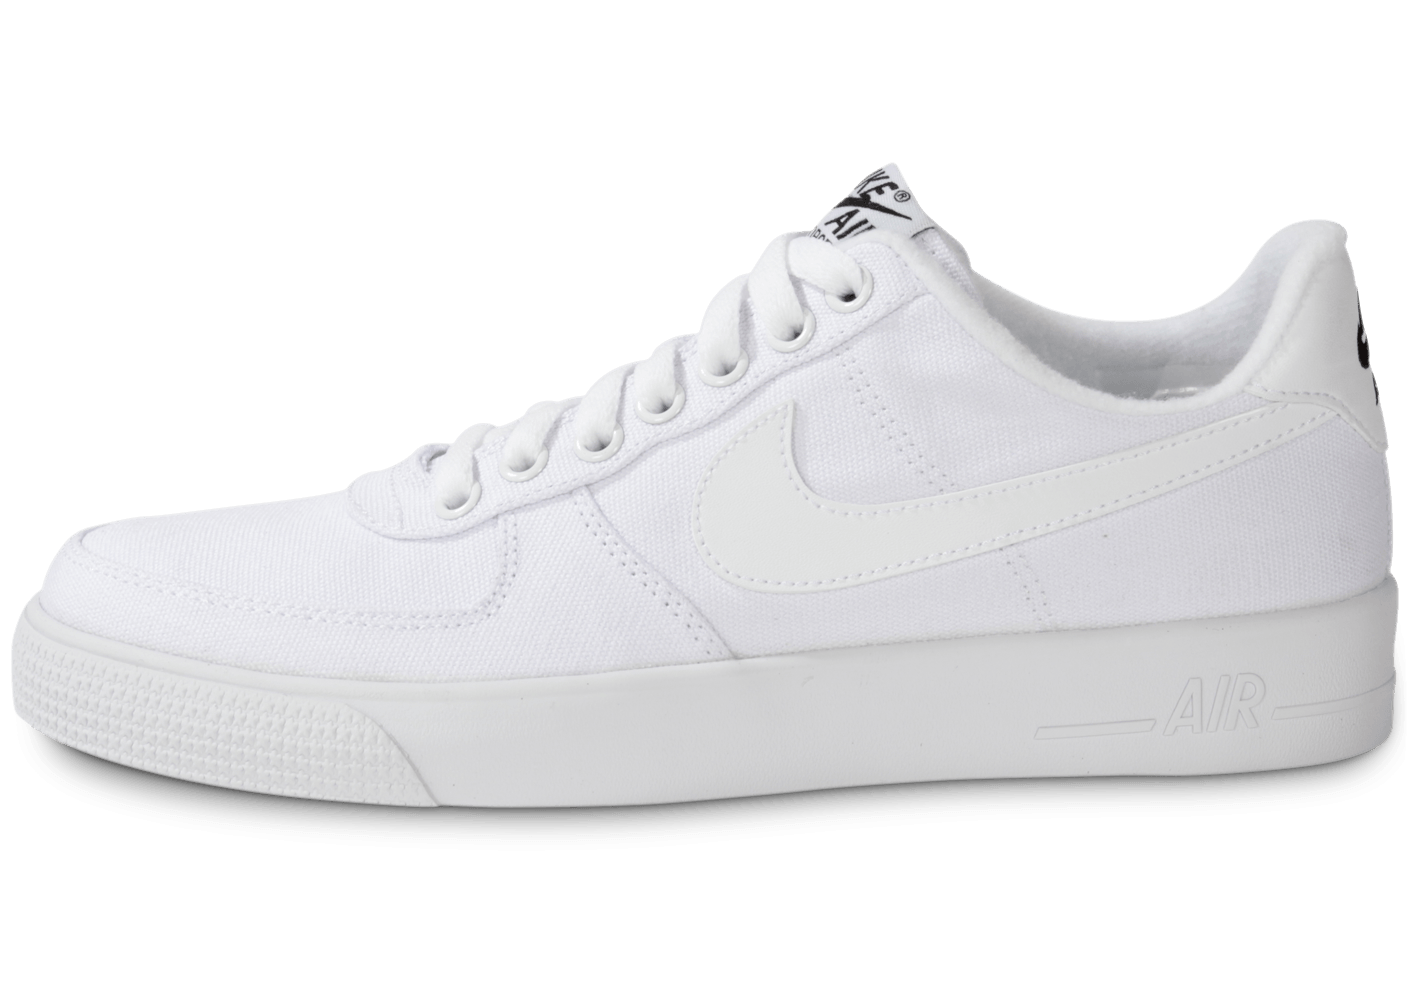 competitive price c9e15 284ff Nike Air Force 1 Ac Blanche - Chaussures Baskets homme - Chausport